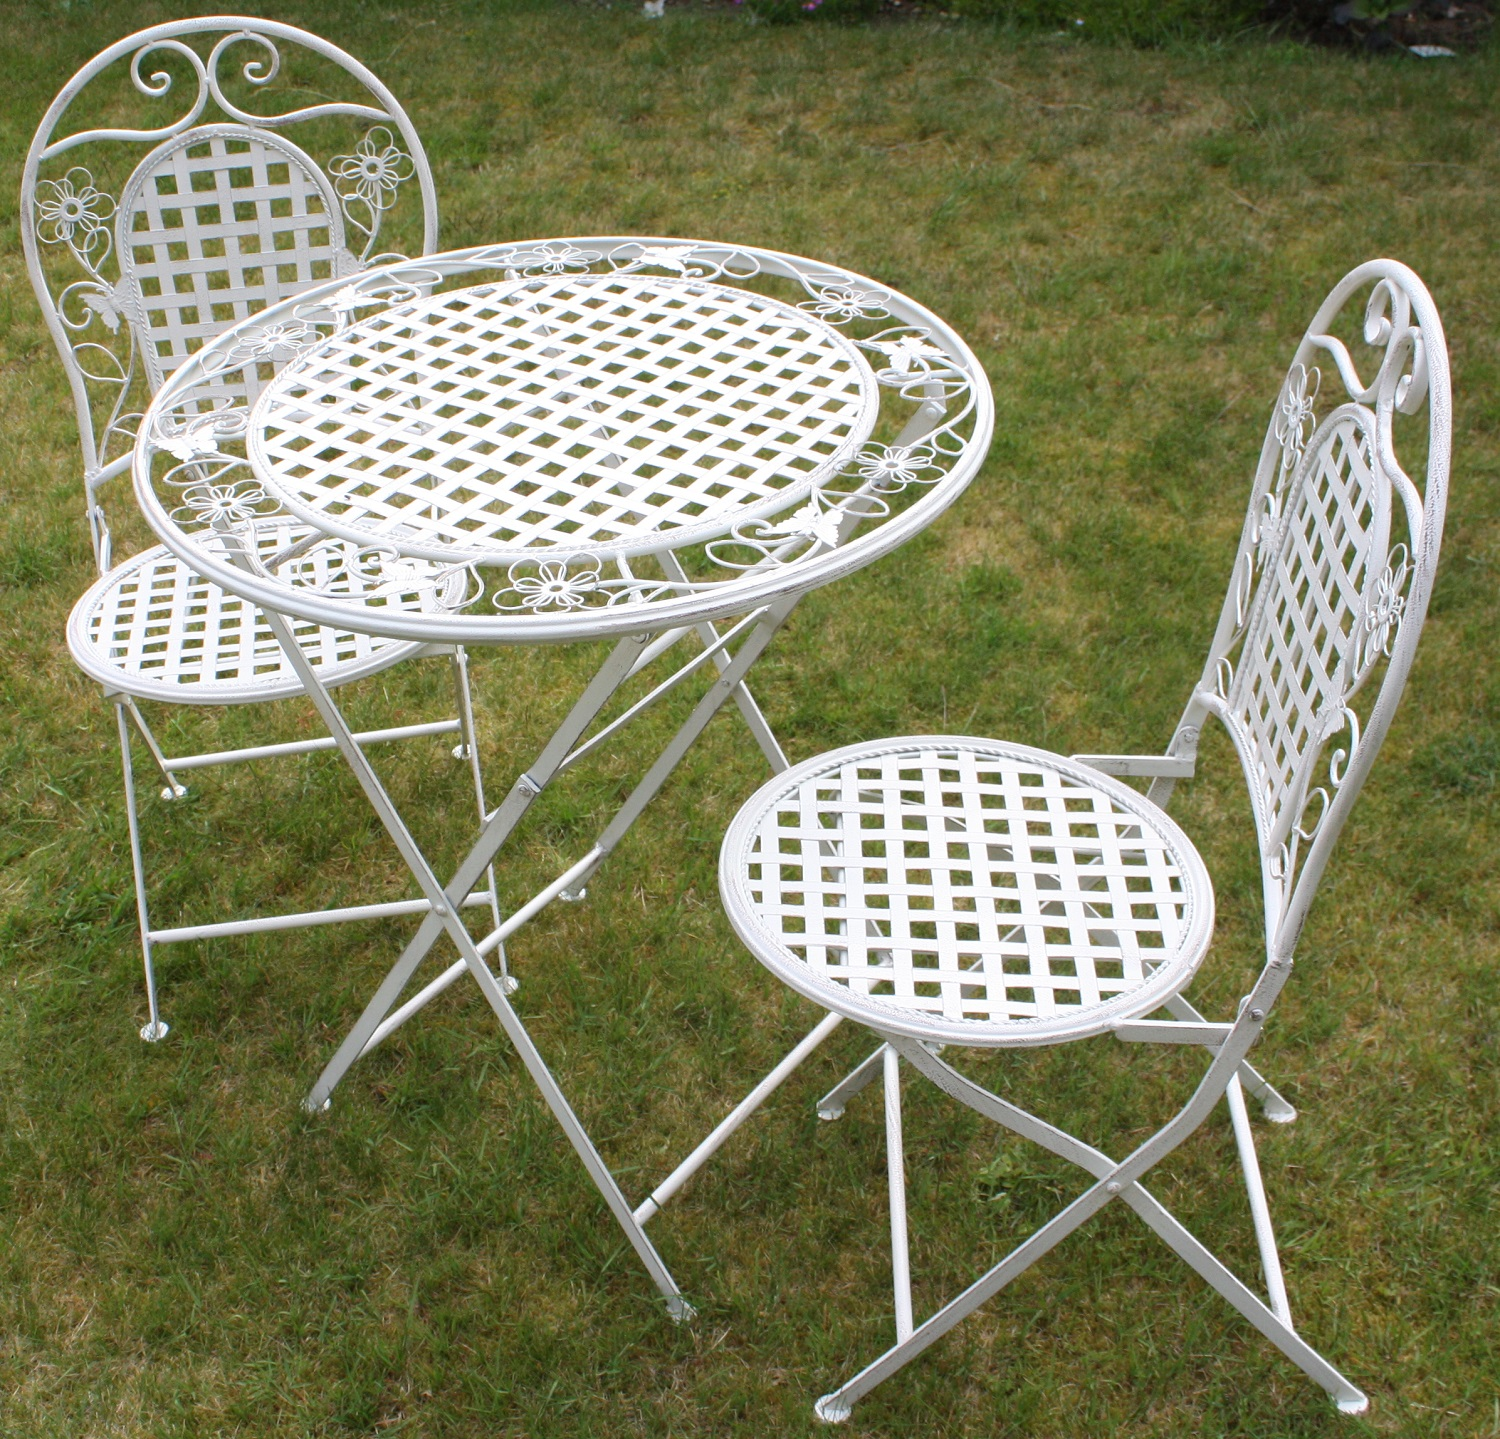 White floral outdoor folding metal round table and chairs for Small outdoor table and chairs